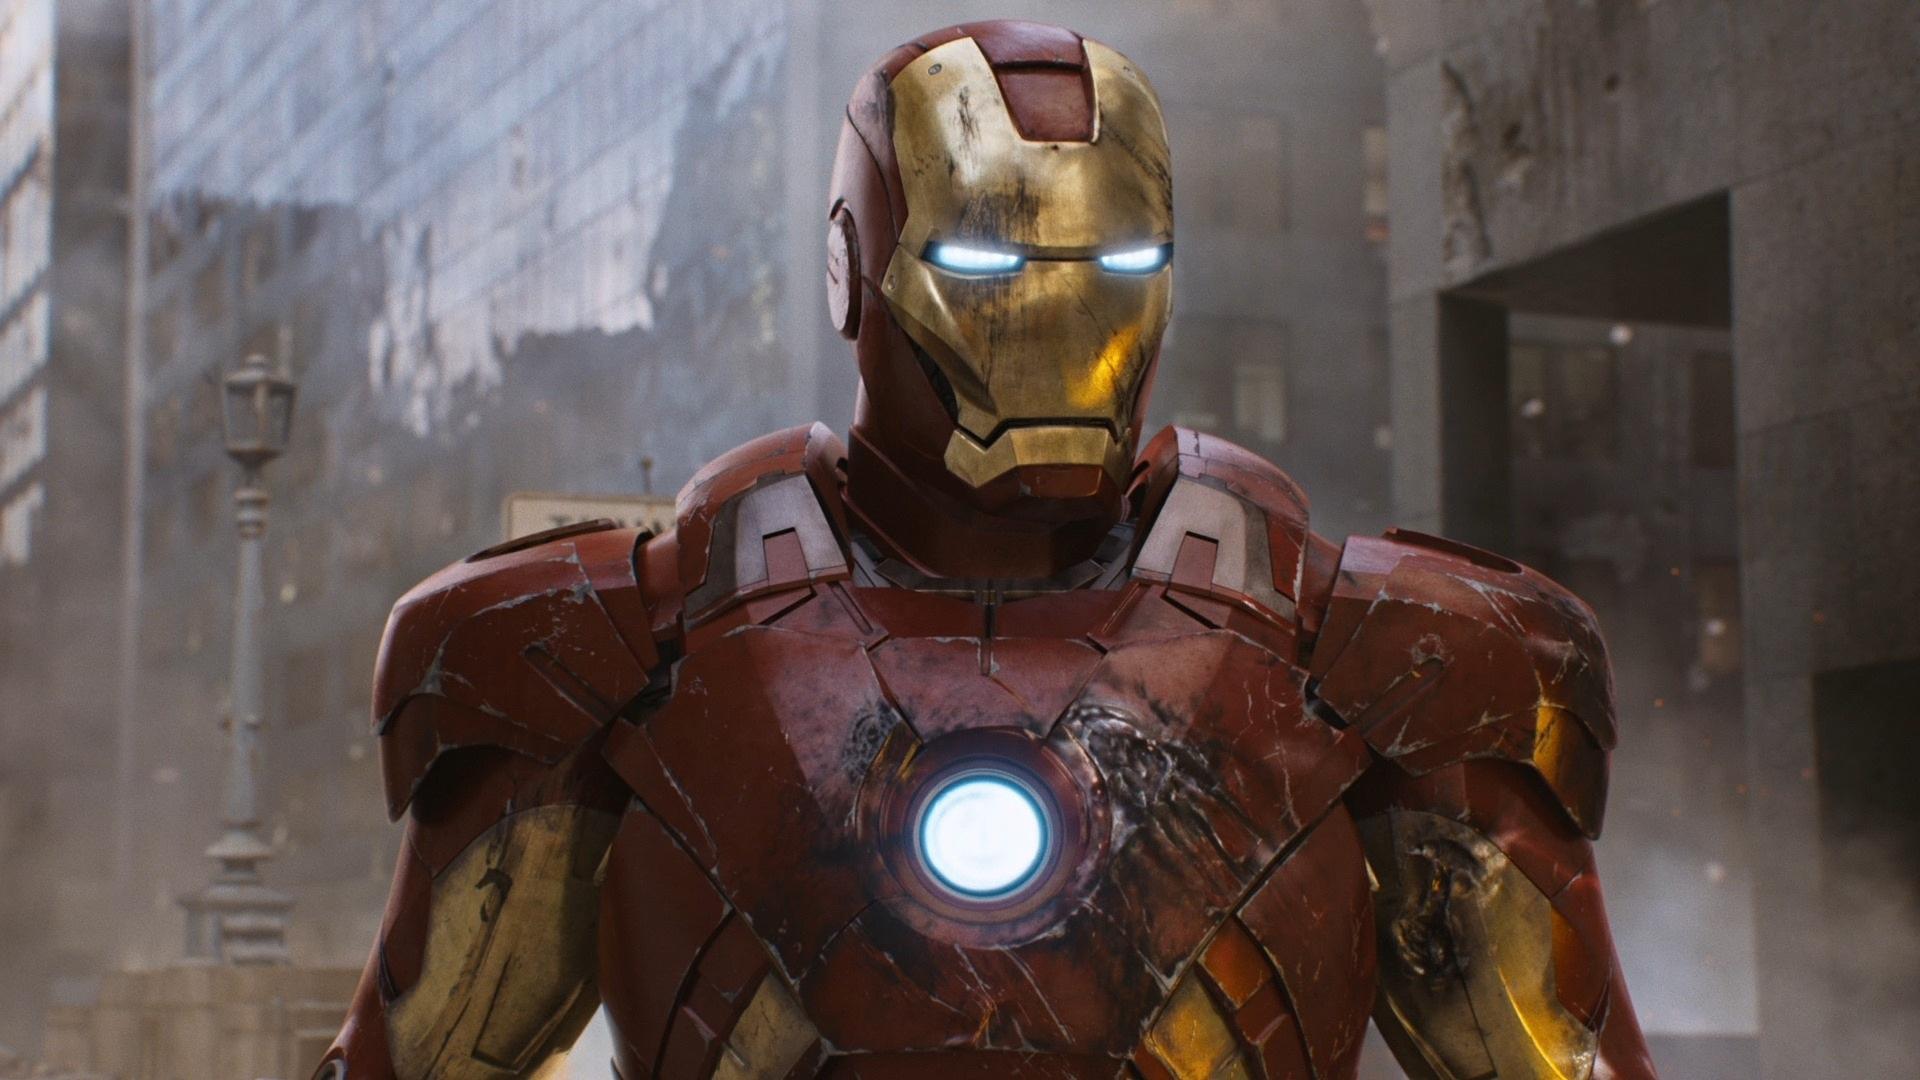 Iron Man Mark 7 Avengers additionally Spongebob Funny Minions besides Sexy White Backgrounds Eyes as well Tantan Hayashi ƞ�丹丹 Ɨ�本女星 ɫ�清壁纸19 1920x1080 together with Audi R8 GT. on 1080 html